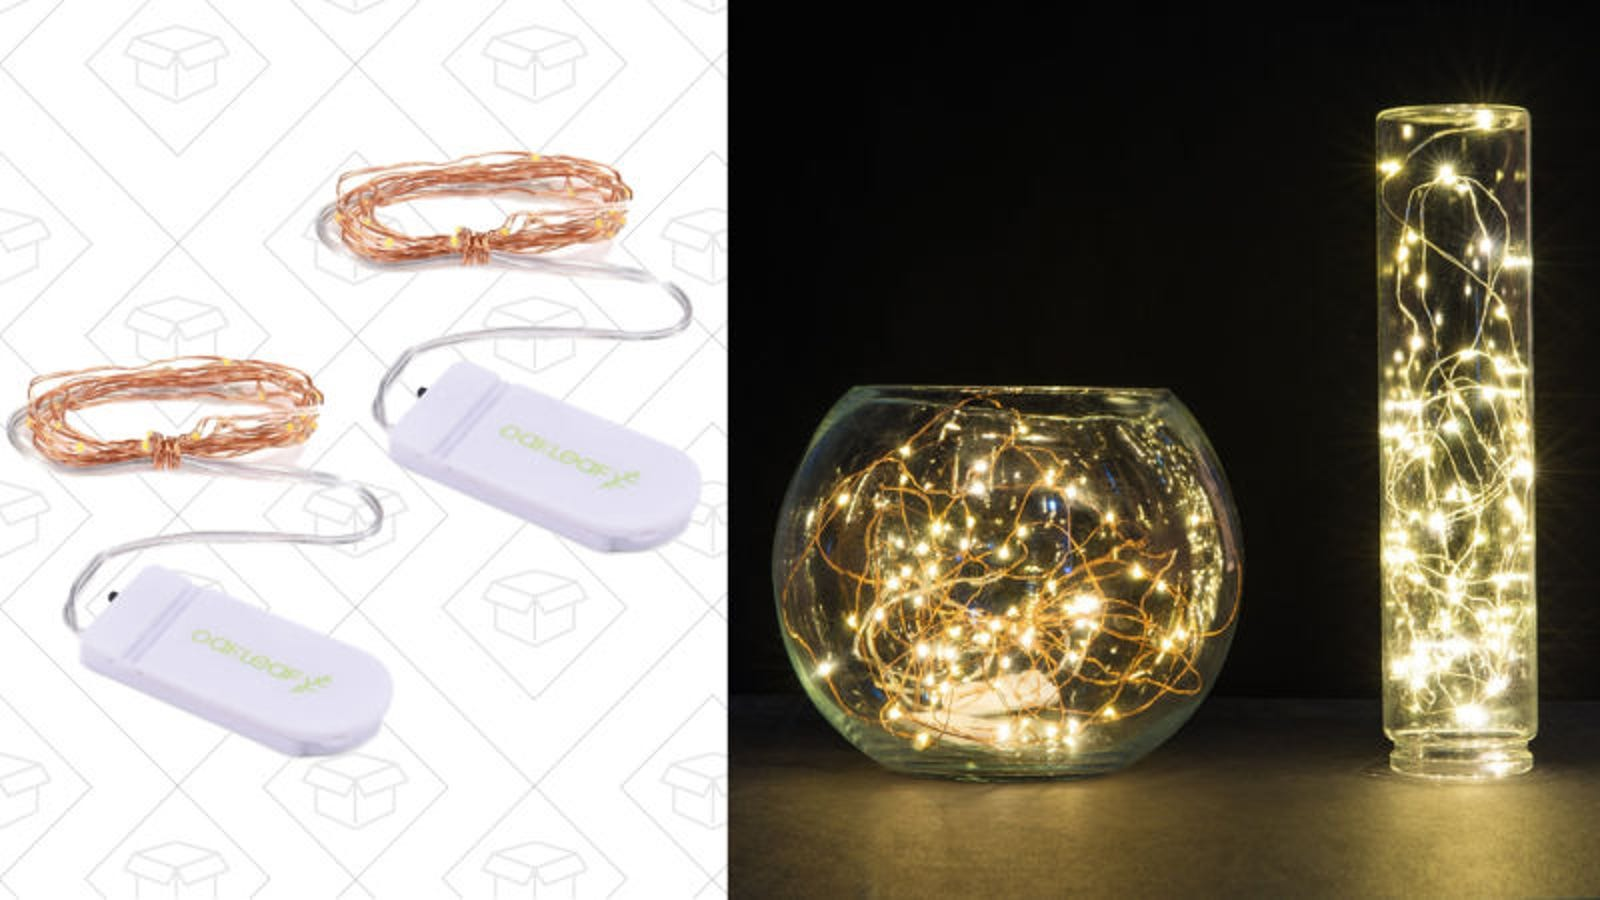 Light Up Your Day With 2 Sets Of String Lights For 5